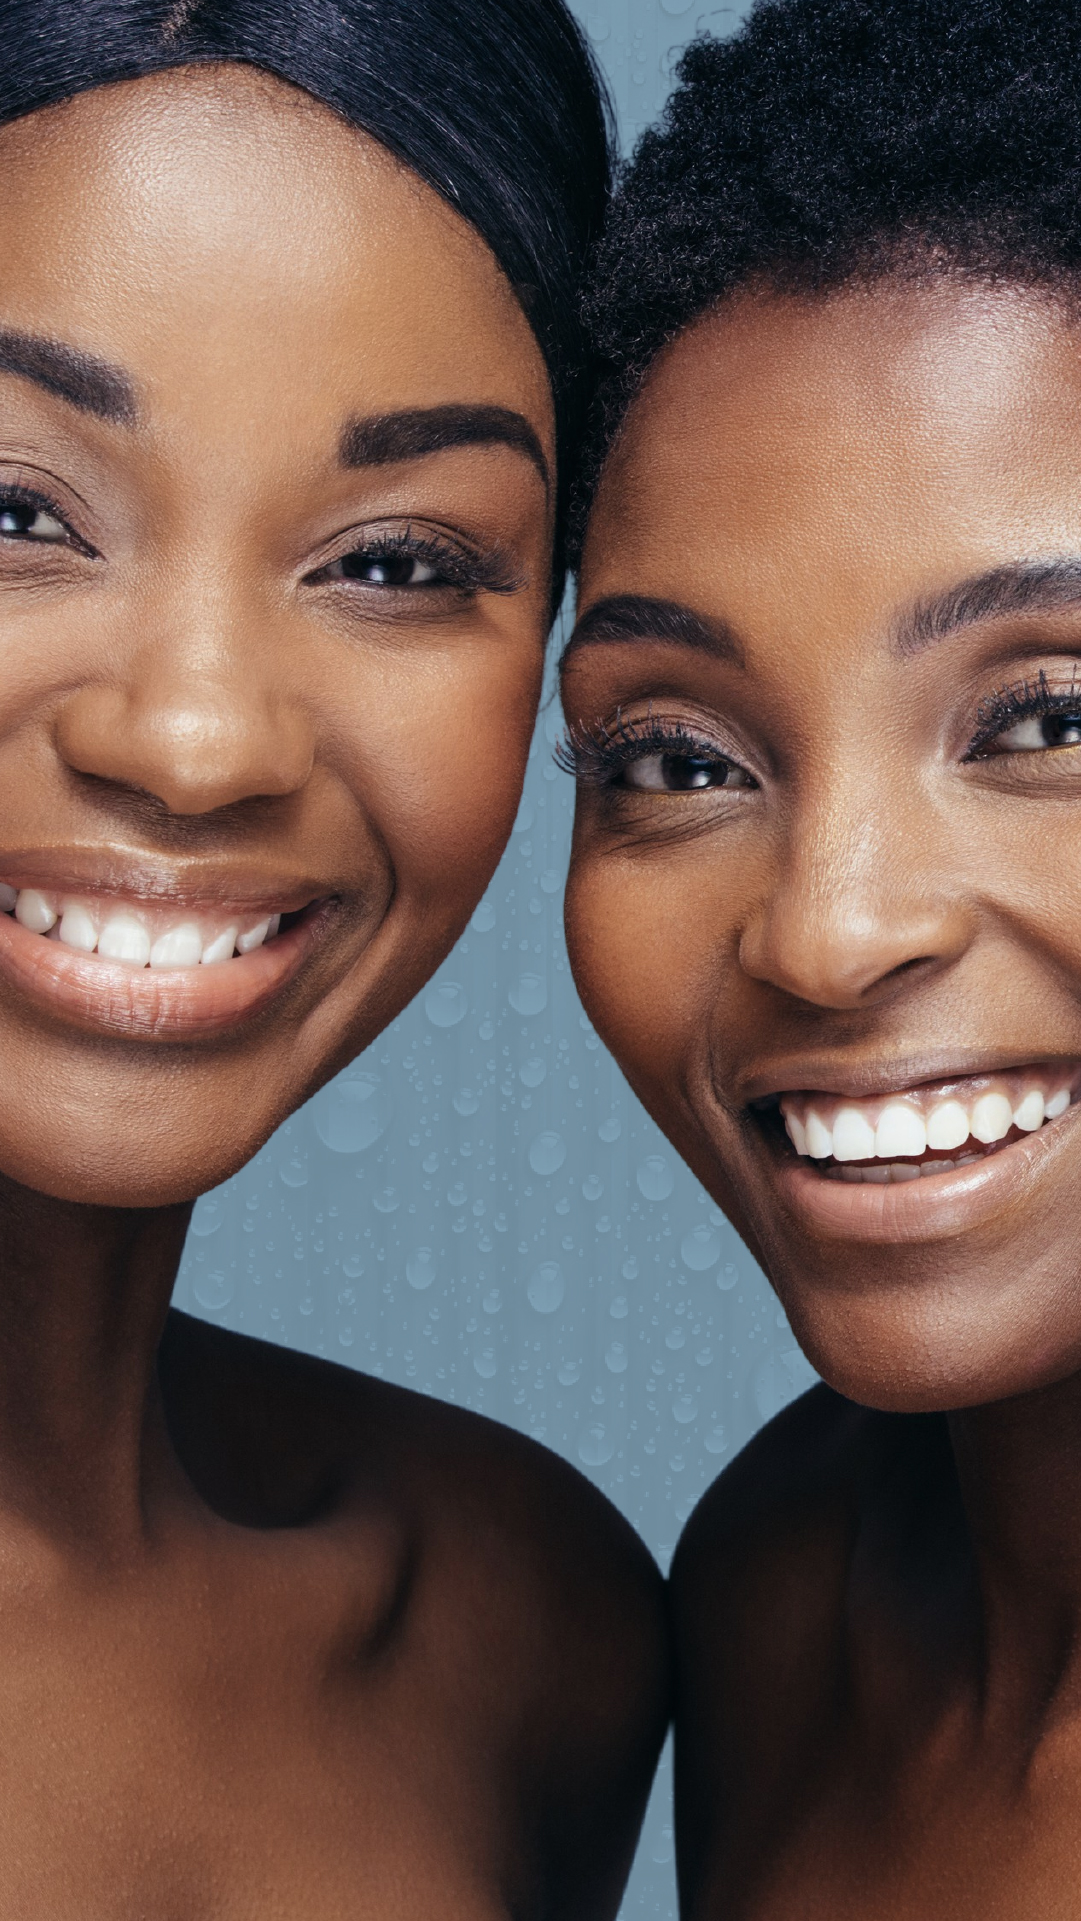 How To Achieve Clear Skin With The New CRT 2-in-1 Toner & Exfoliator